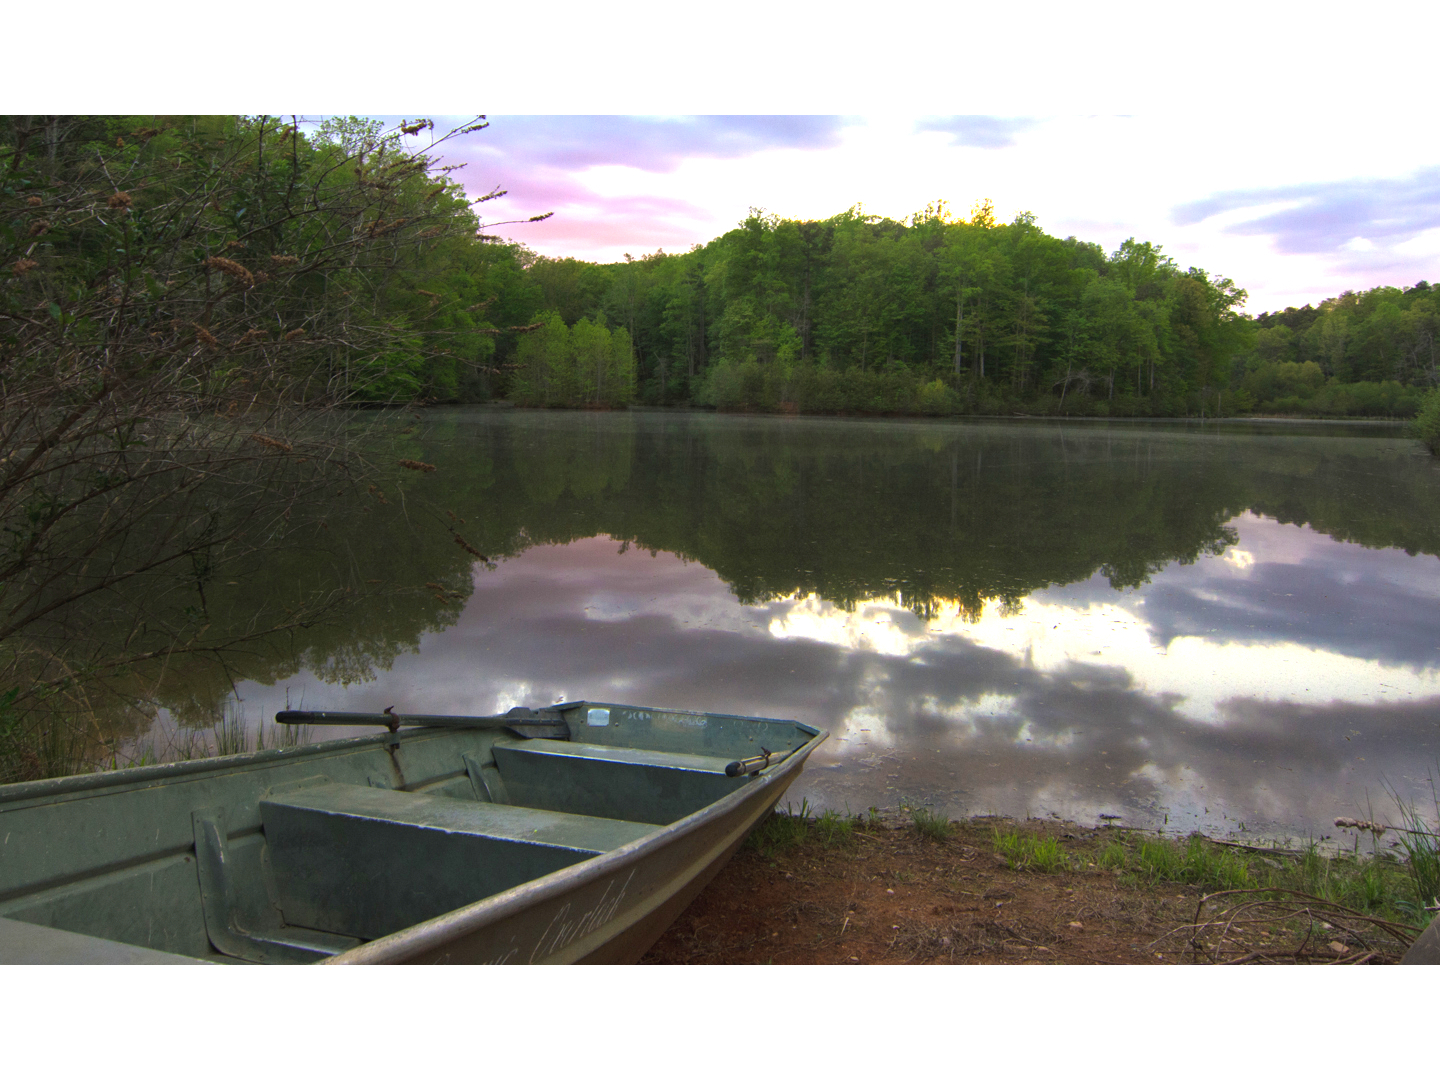 A small boat in a body of water at Pilot Knob Inn.